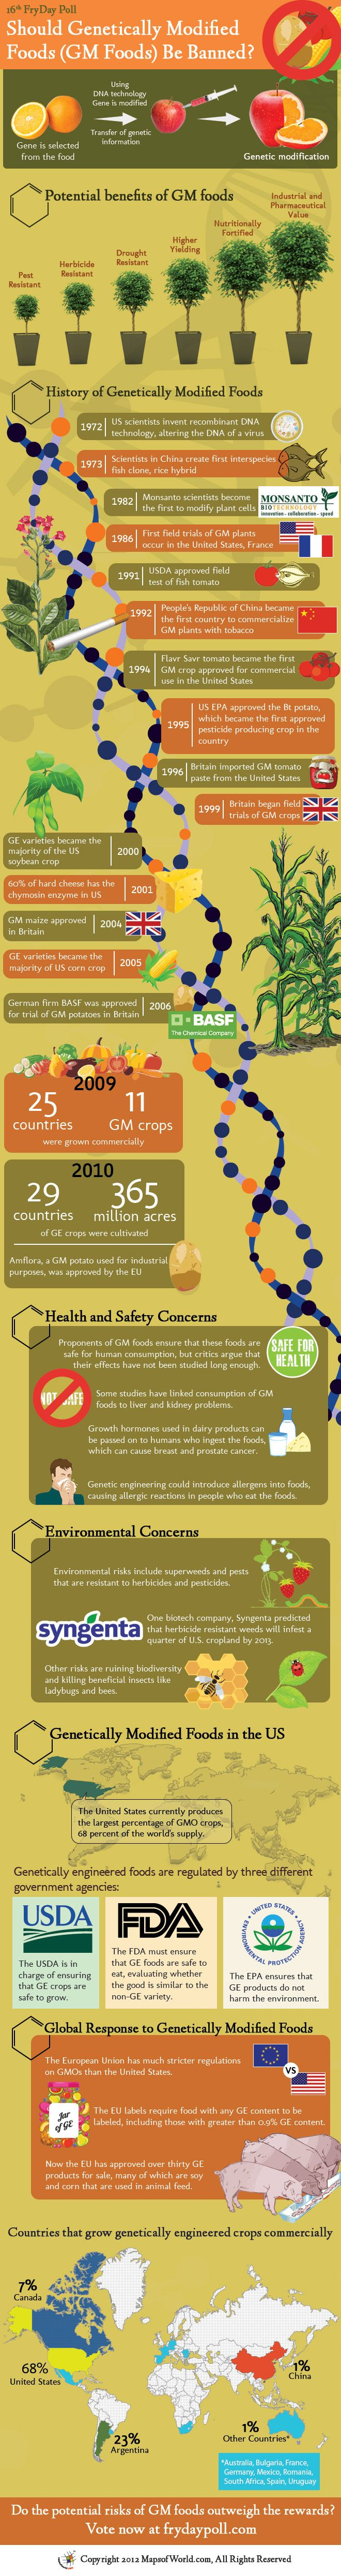 What are your thoughts on Genetically Modified crops? Are we playing dangerously with nature?